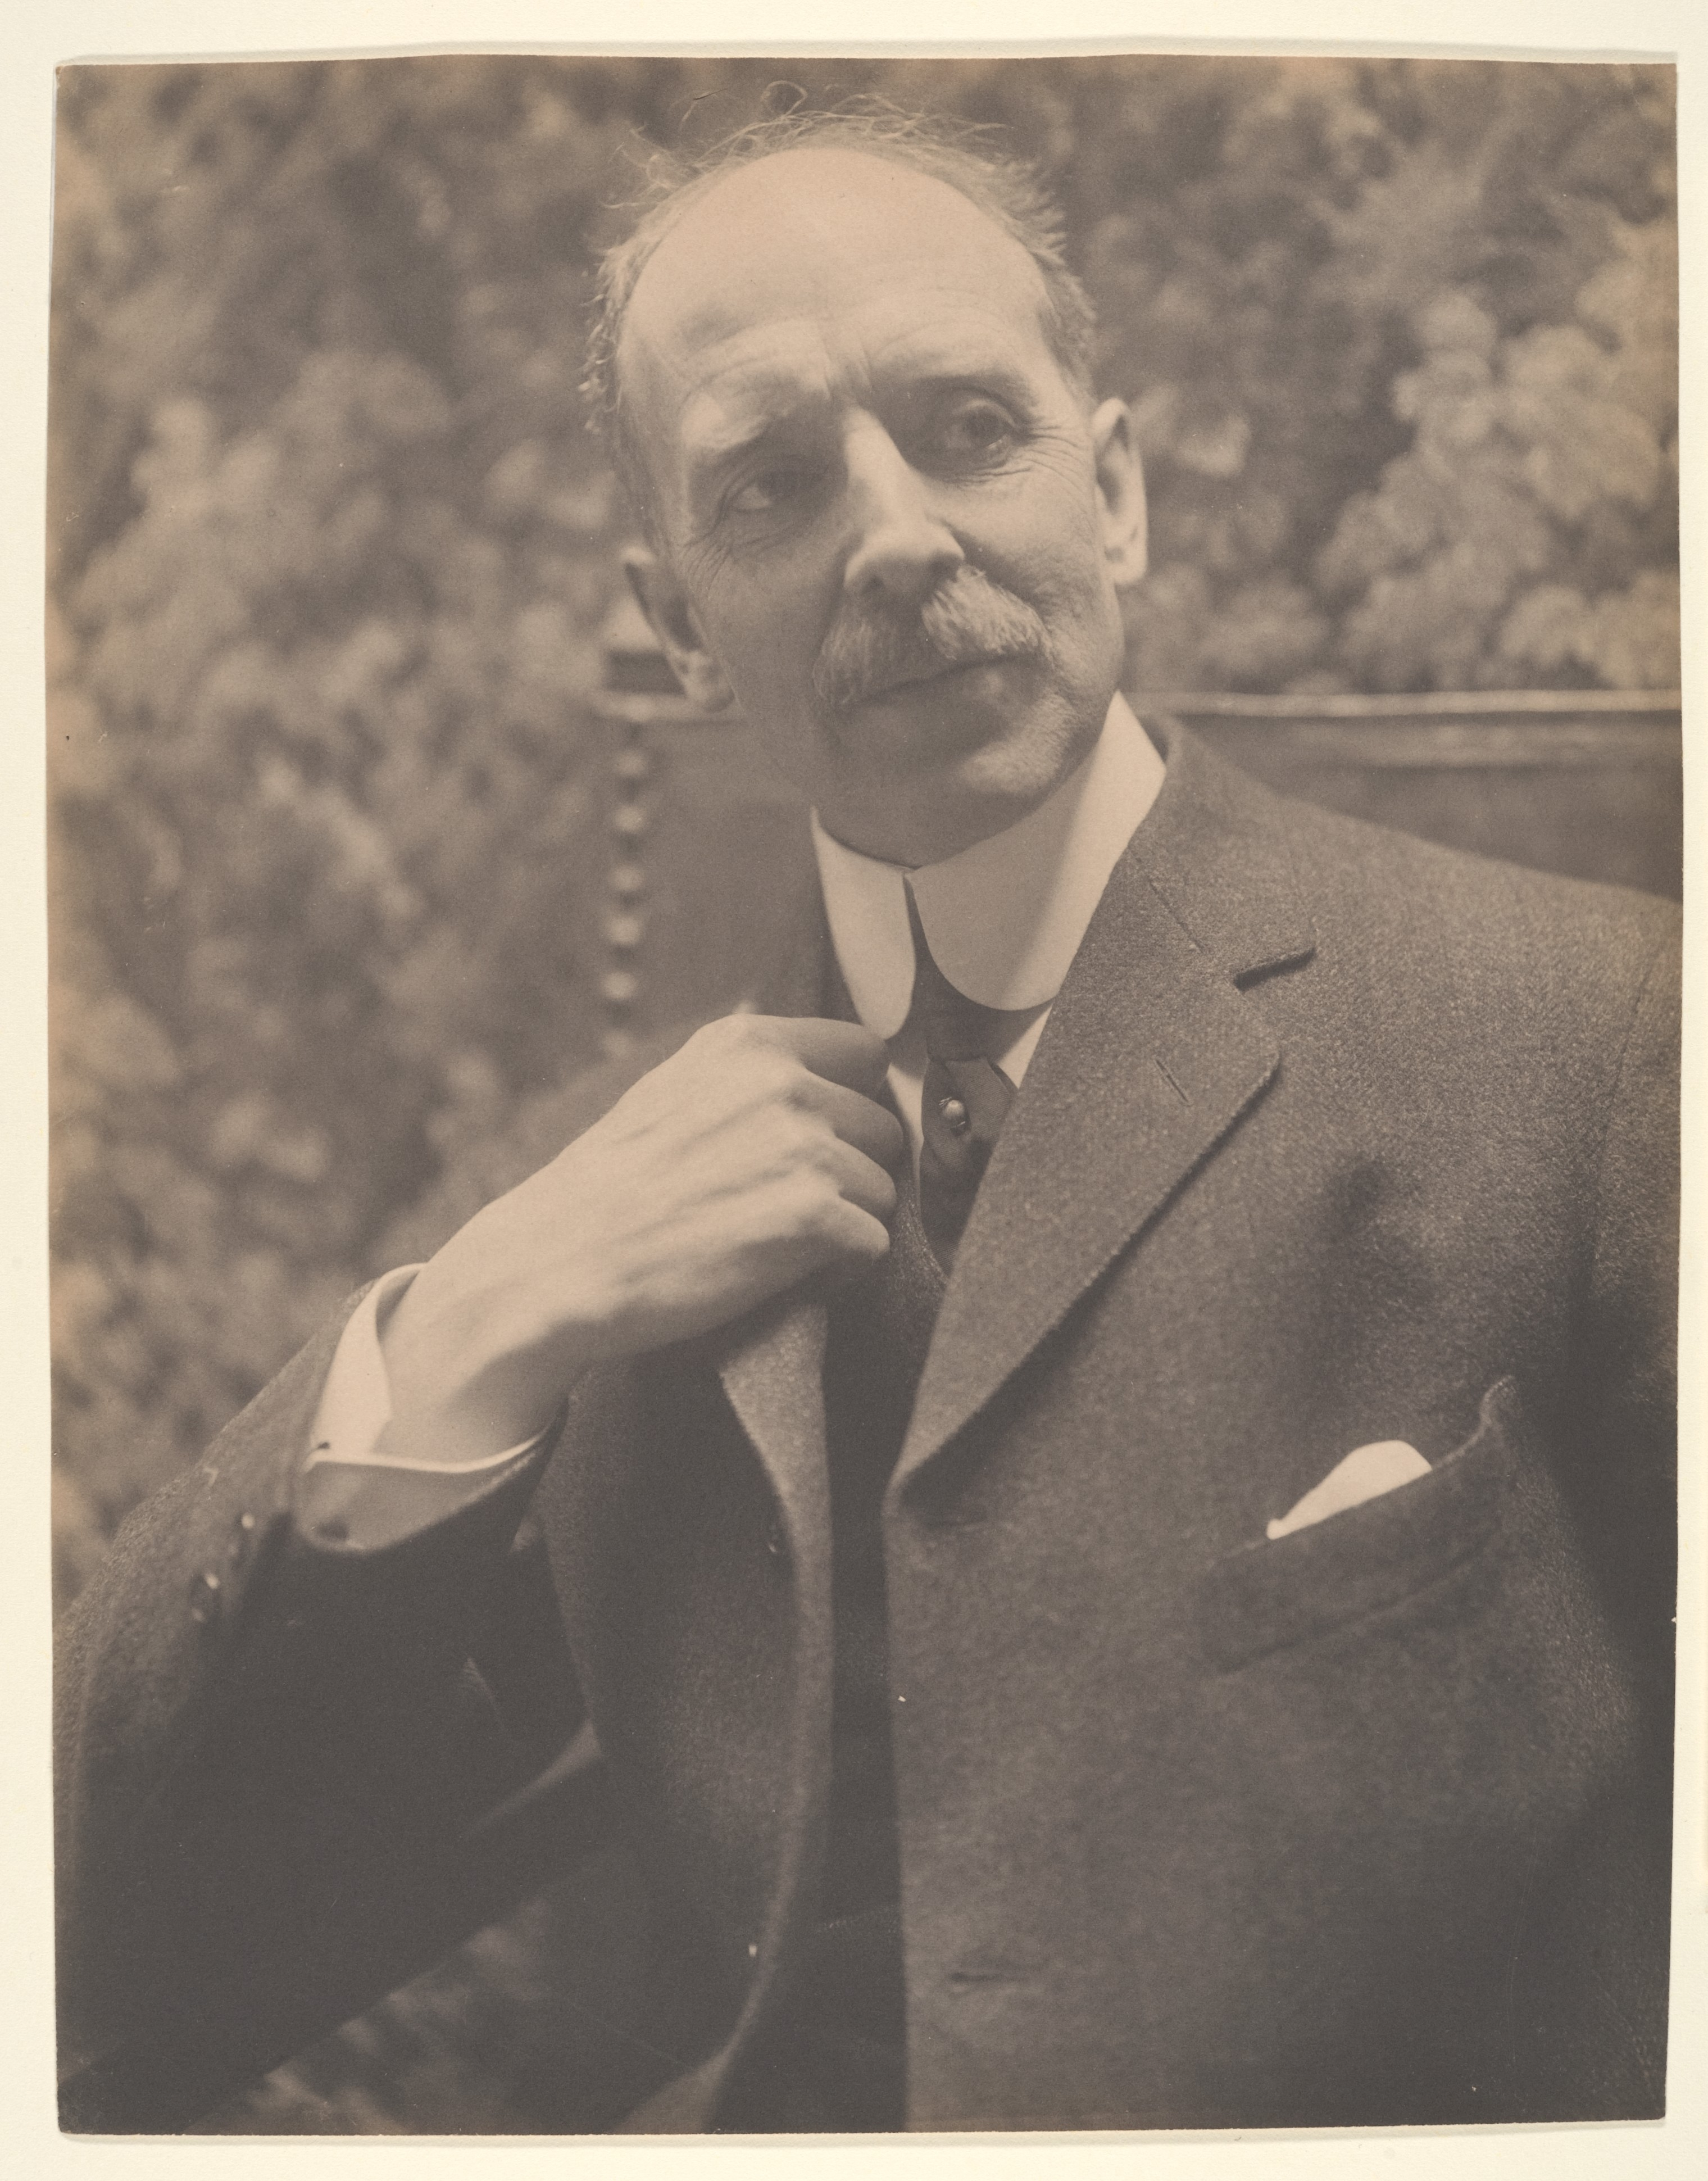 Photograph of Chester Daniel French taken between 1900-1910, from Metropolitan Museum of Art - Gallery Images.